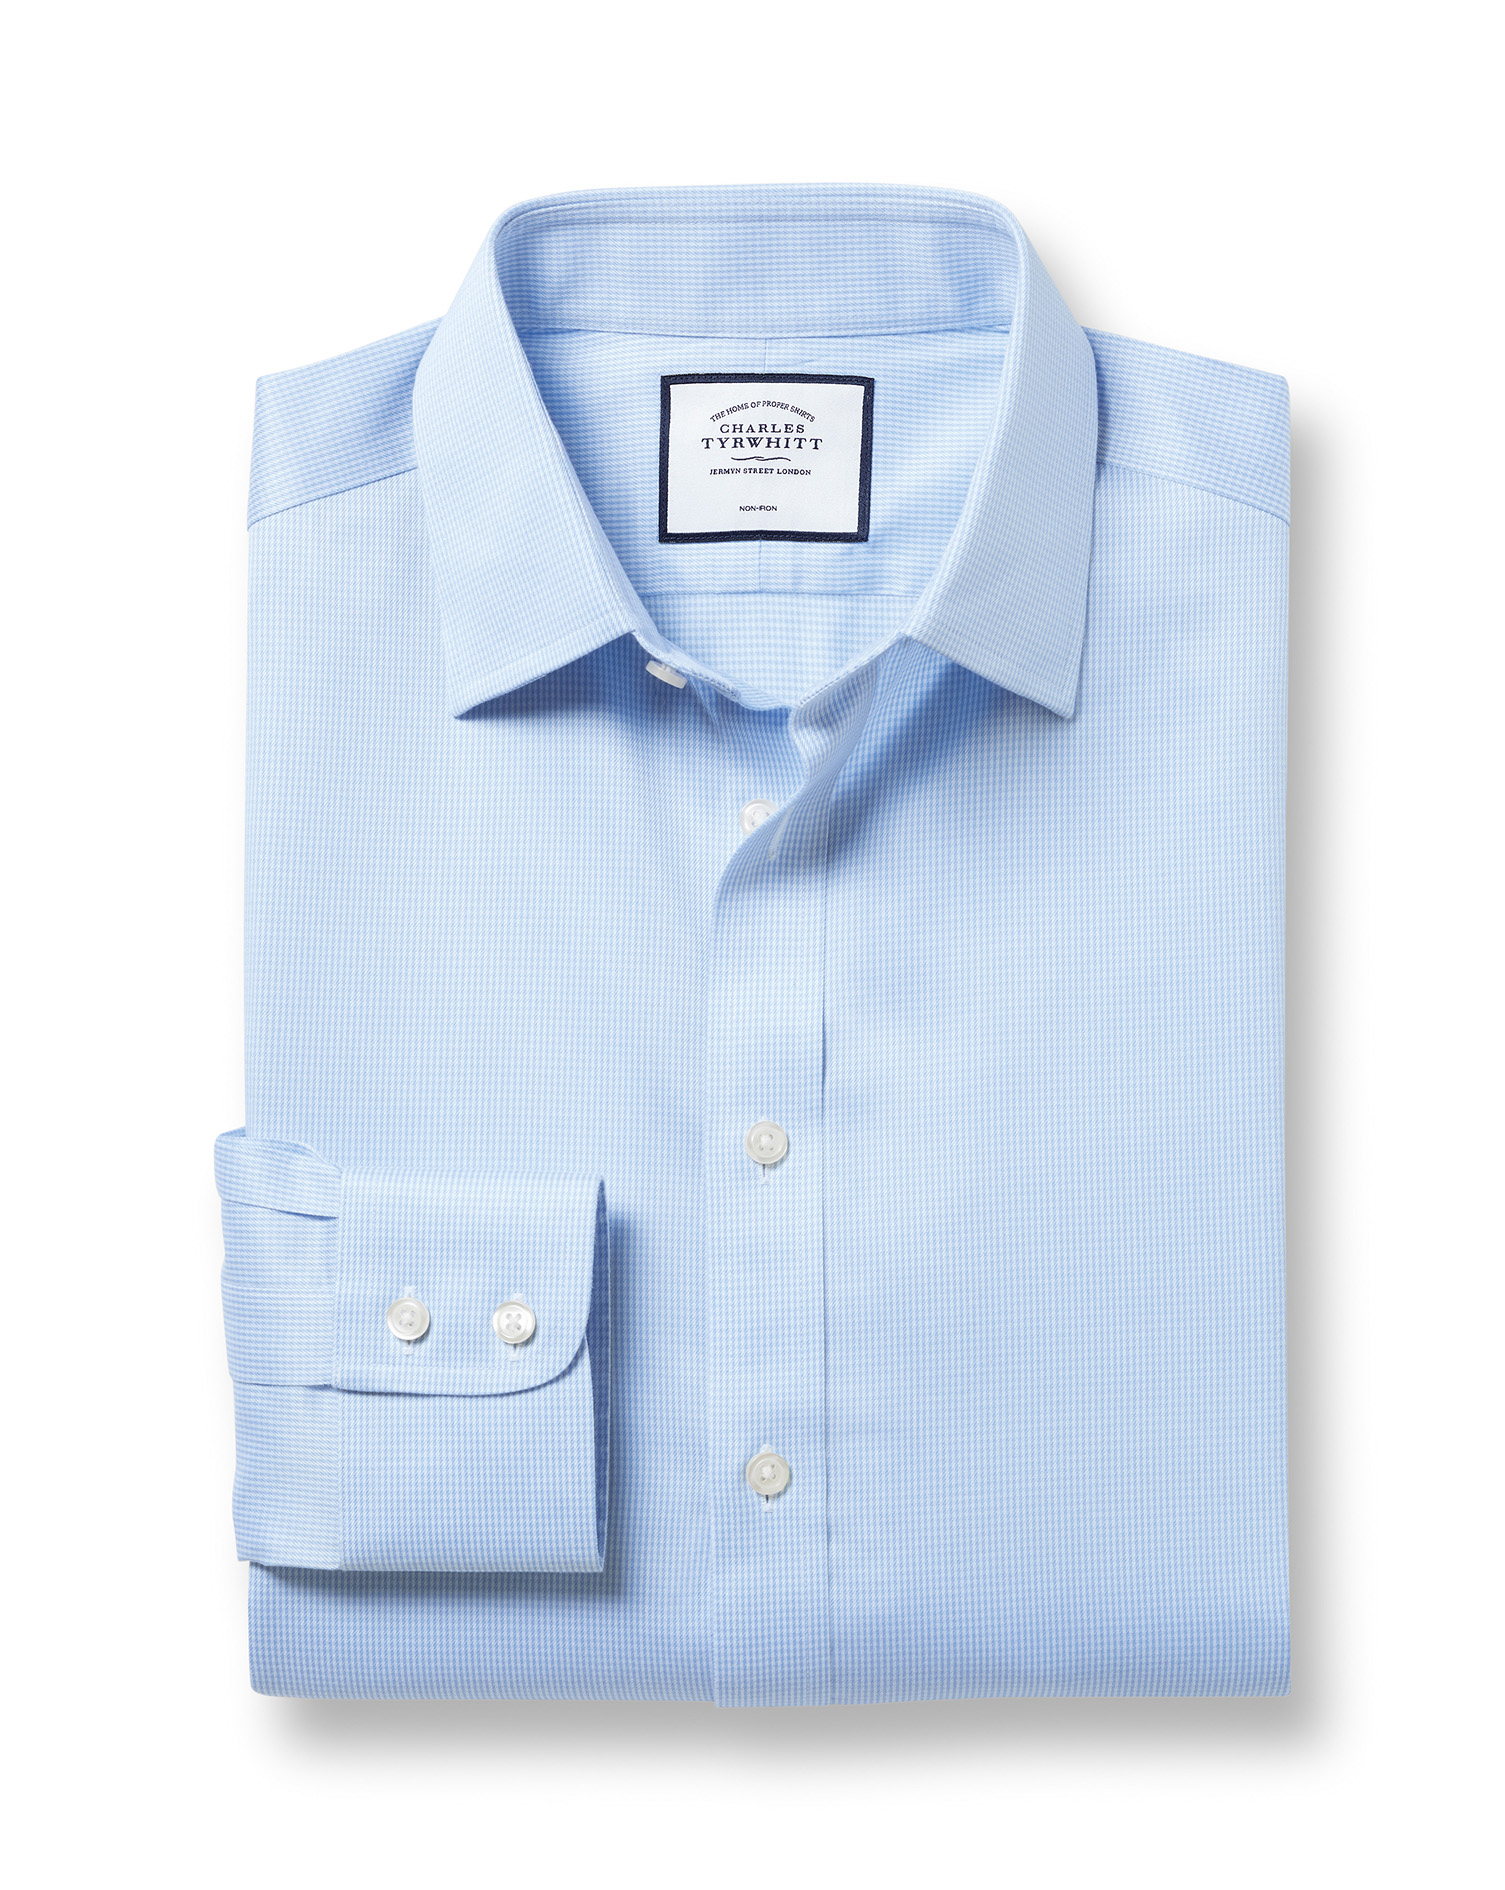 Slim Fit Non-Iron Puppytooth Sky Blue Cotton Formal Shirt Single Cuff Size 18/37 by Charles Tyrwhitt